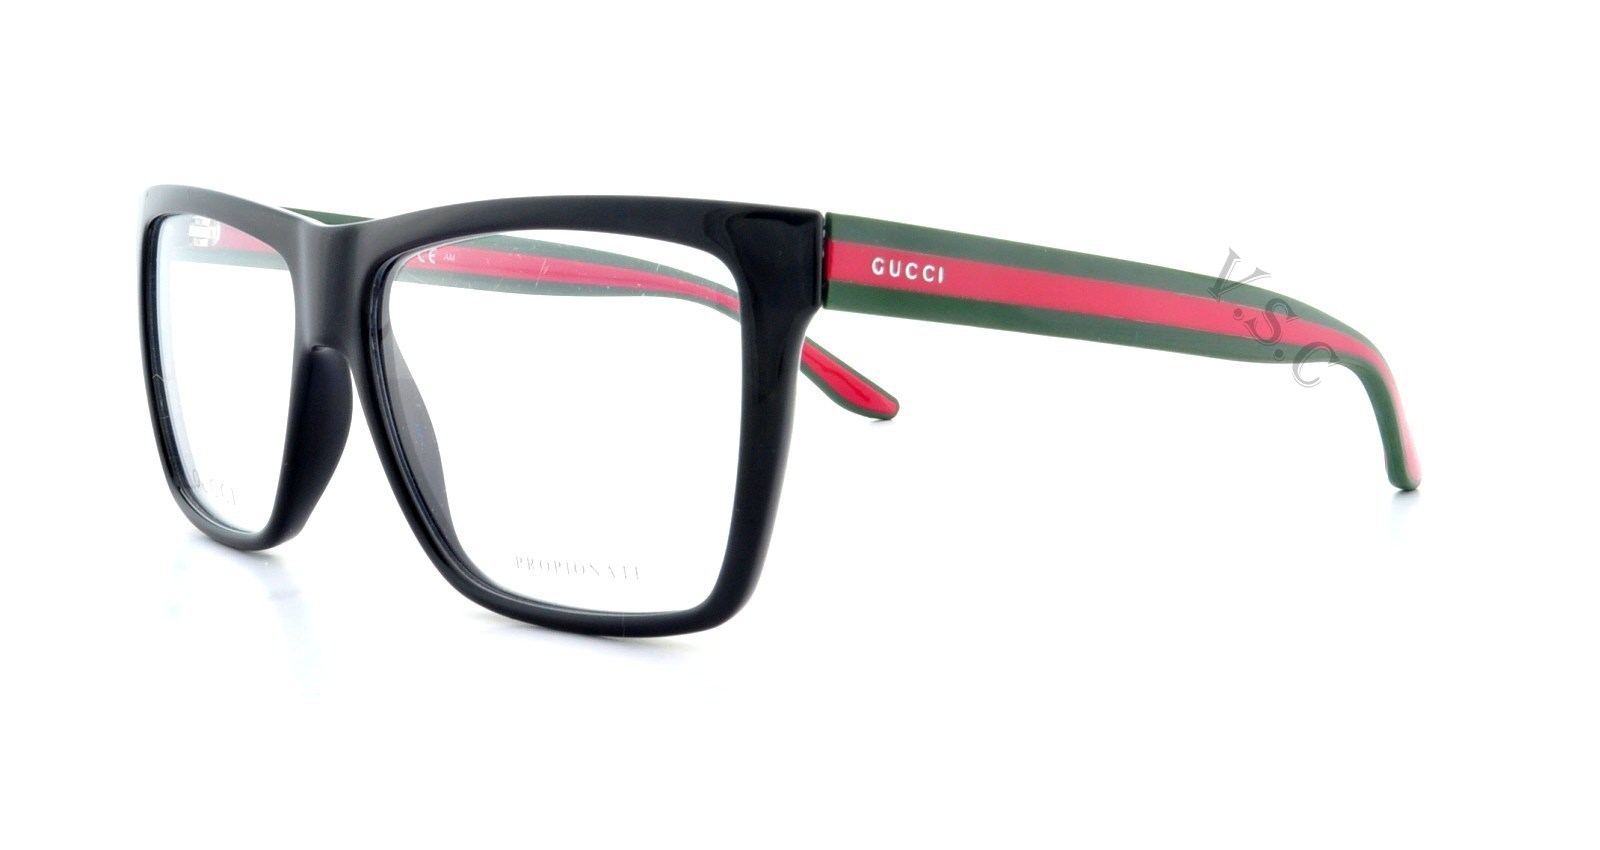 Gucci Eyeglass Frame 3643 : GUCCI 1008 EYEGLASSES GG EYE GLASSES 51N SHINY BLACK - RED ...